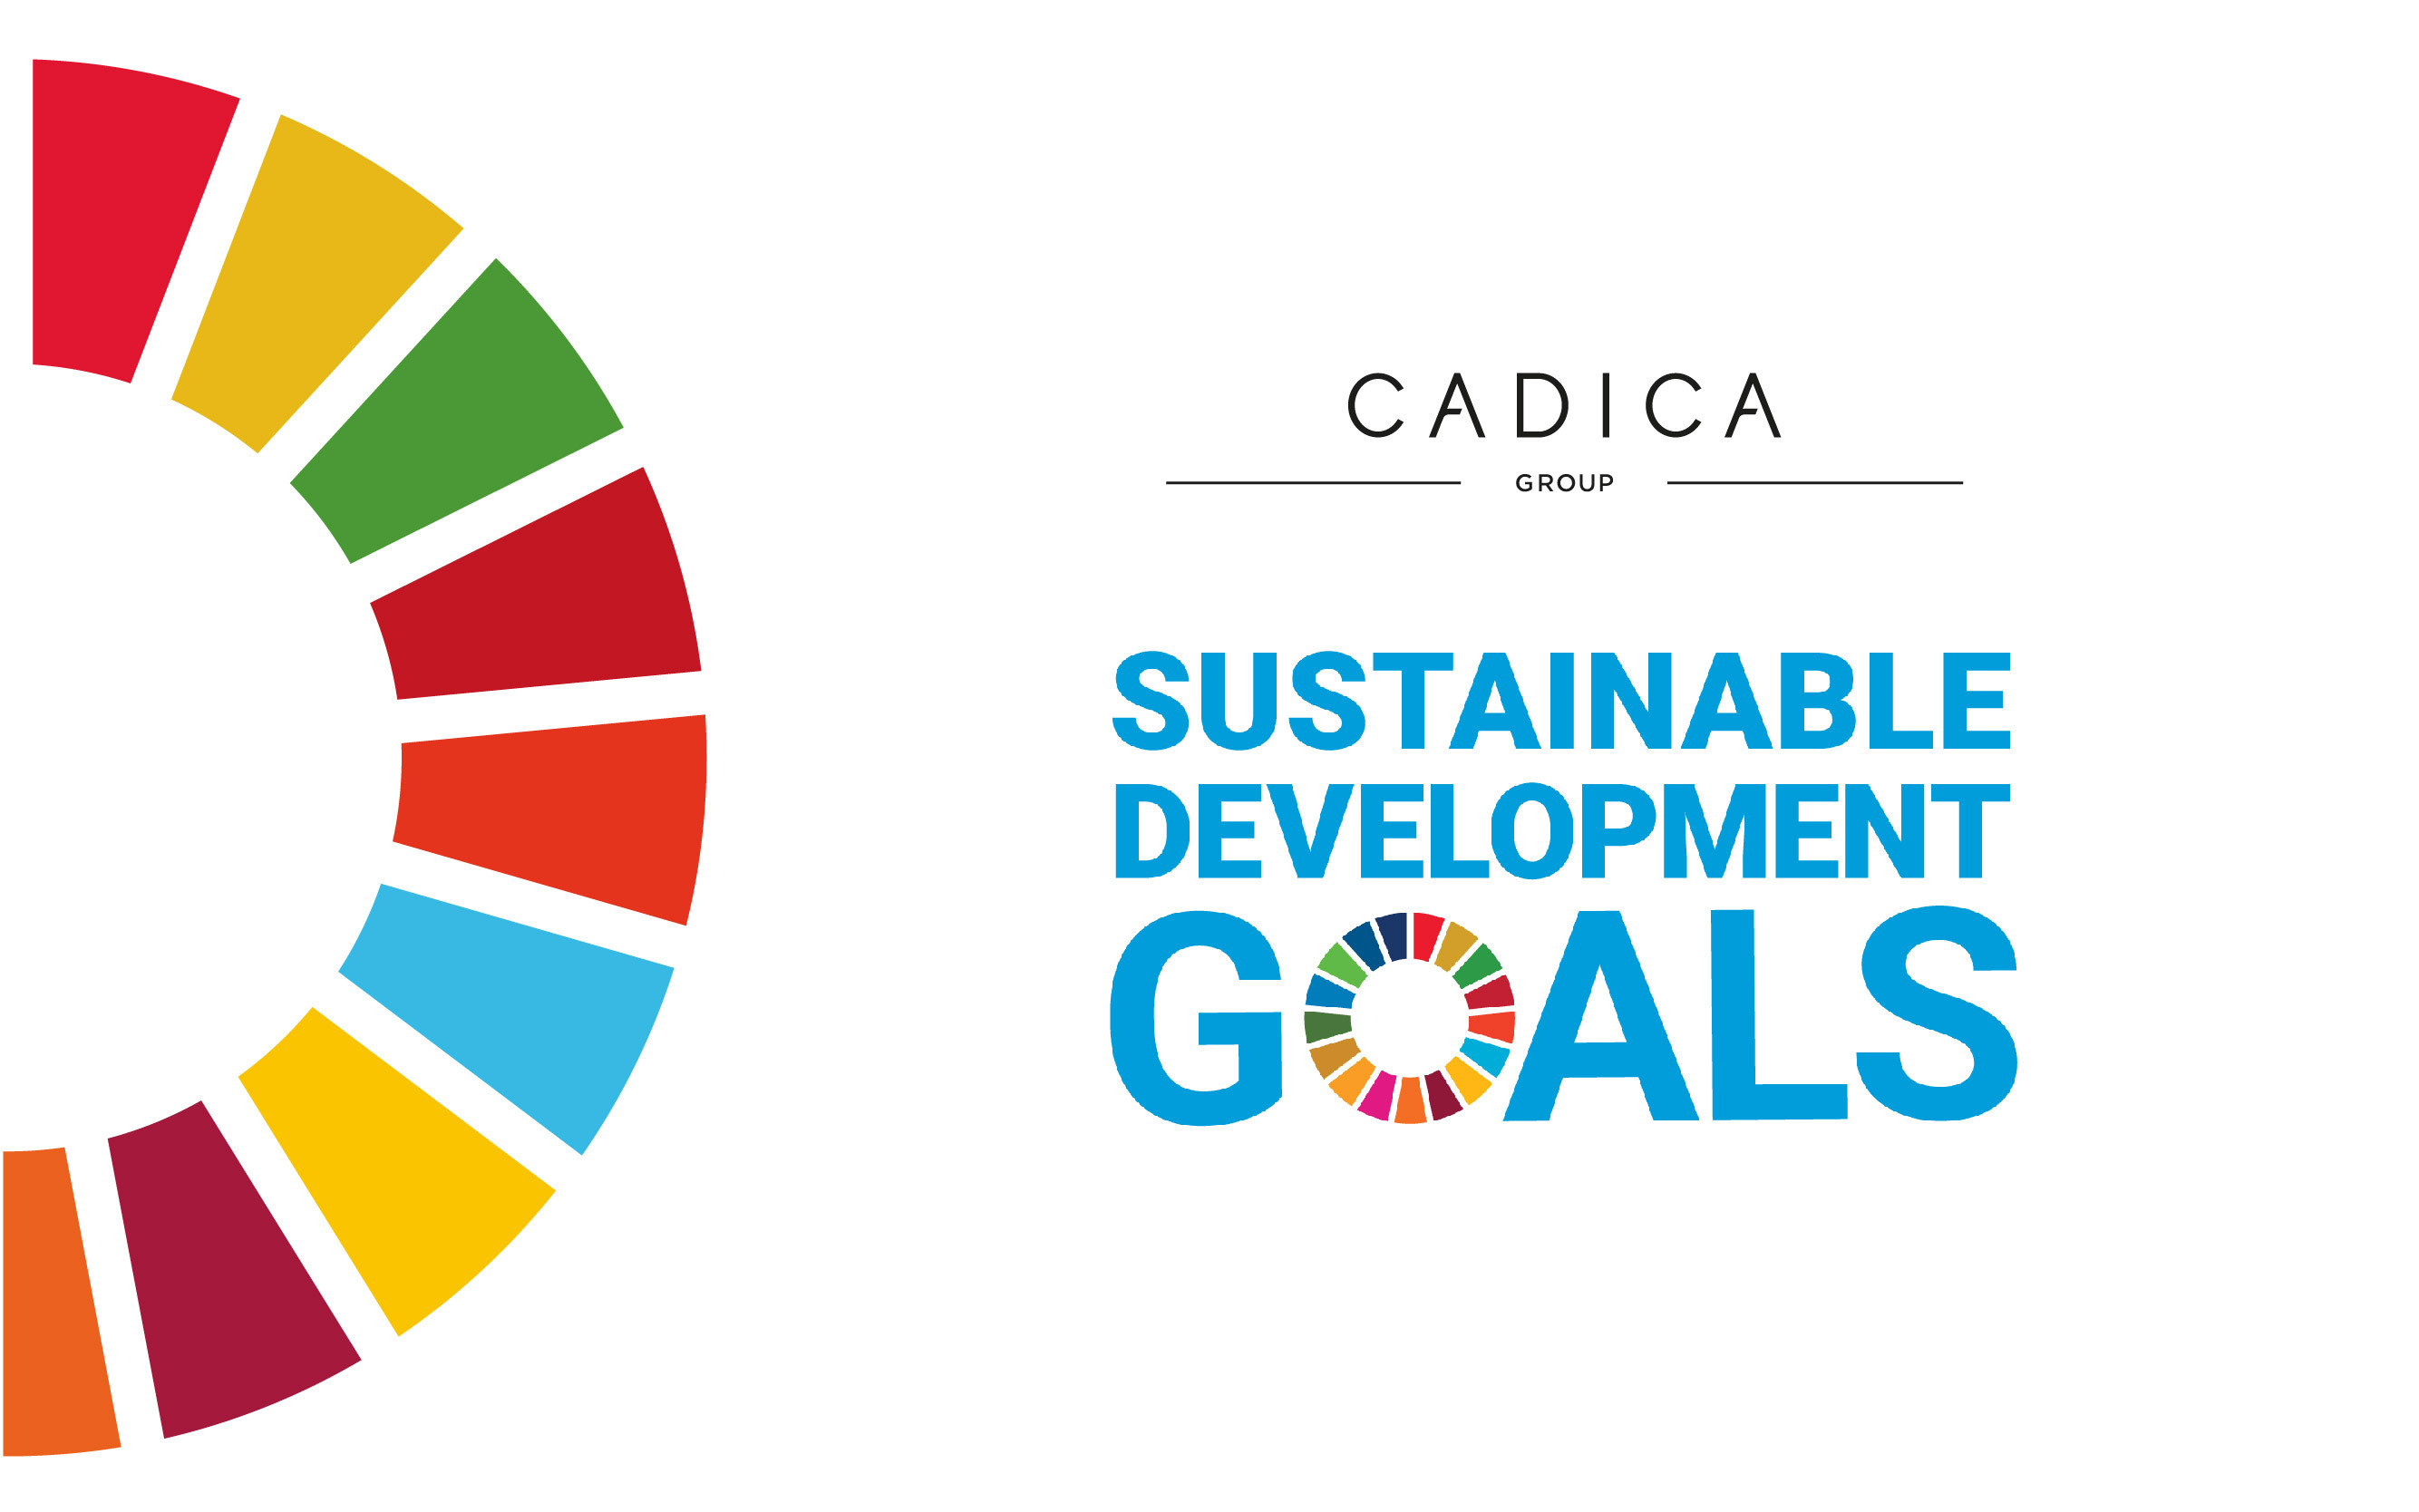 Cadica and the Sustainable Development Goals – SDGs ONU Agenda 2030